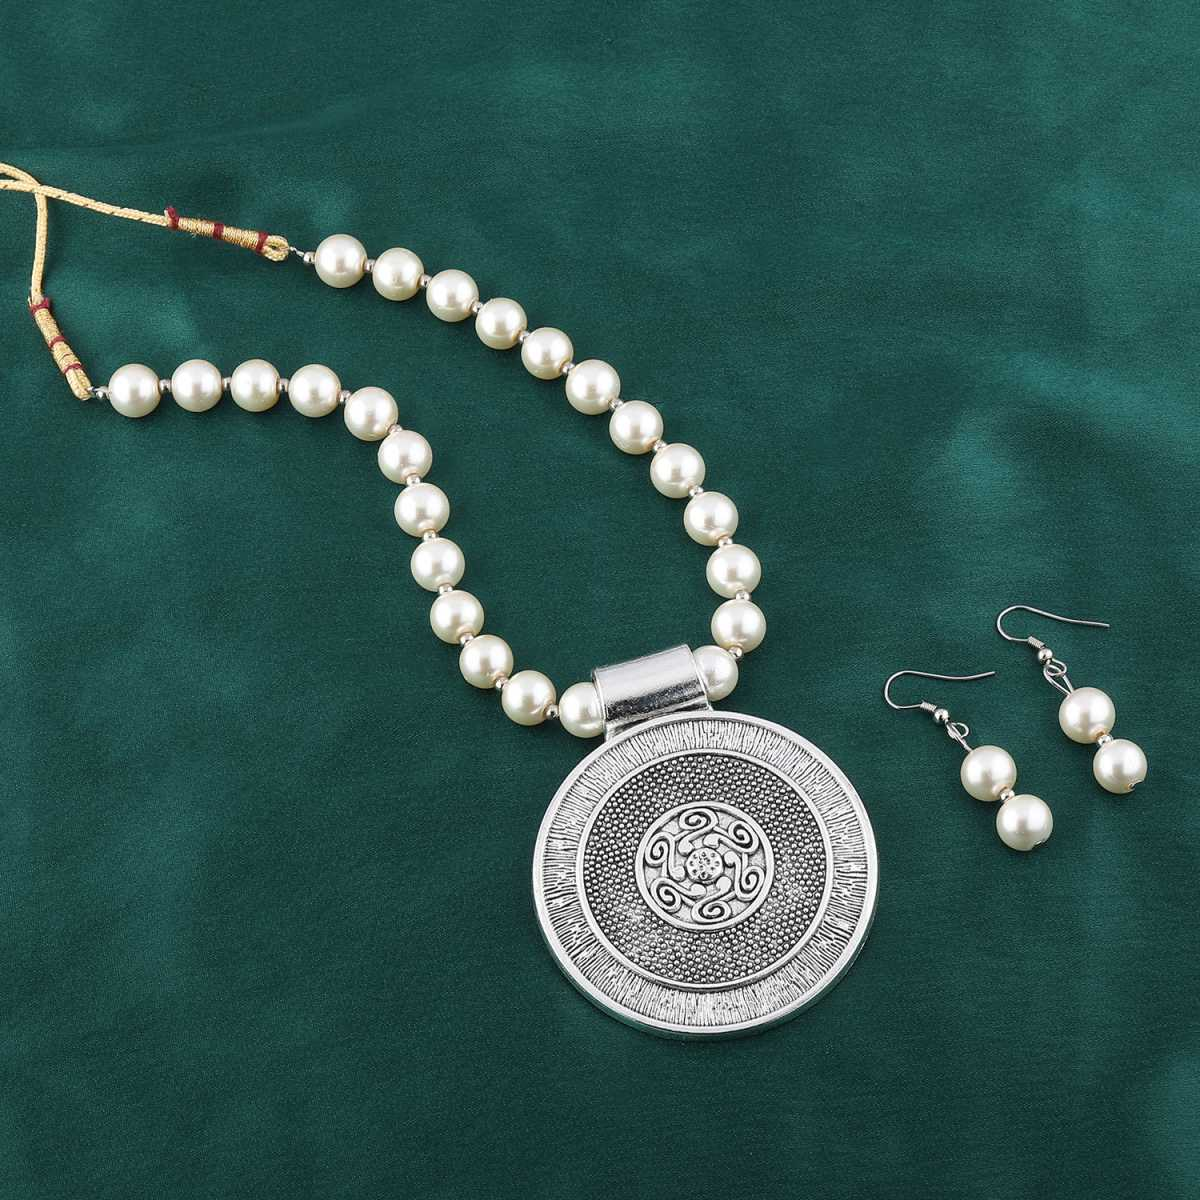 Exclusive Royal Oxidised Pendant White Pearl Jewellery set for Women